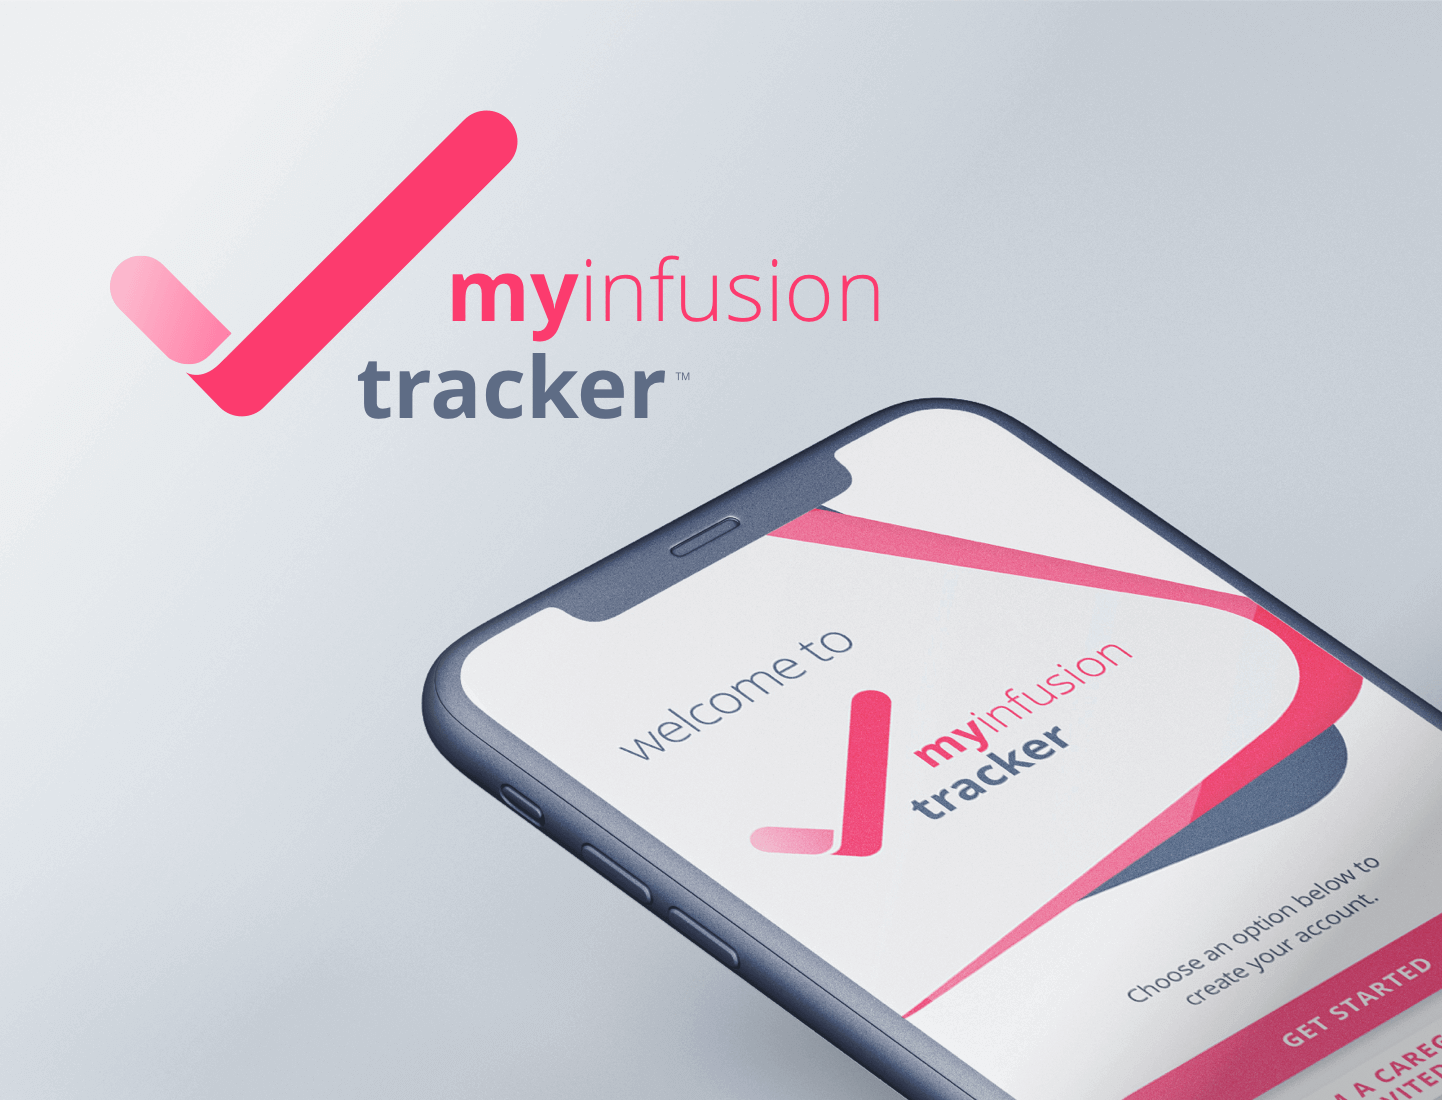 My Infusion Tracker App